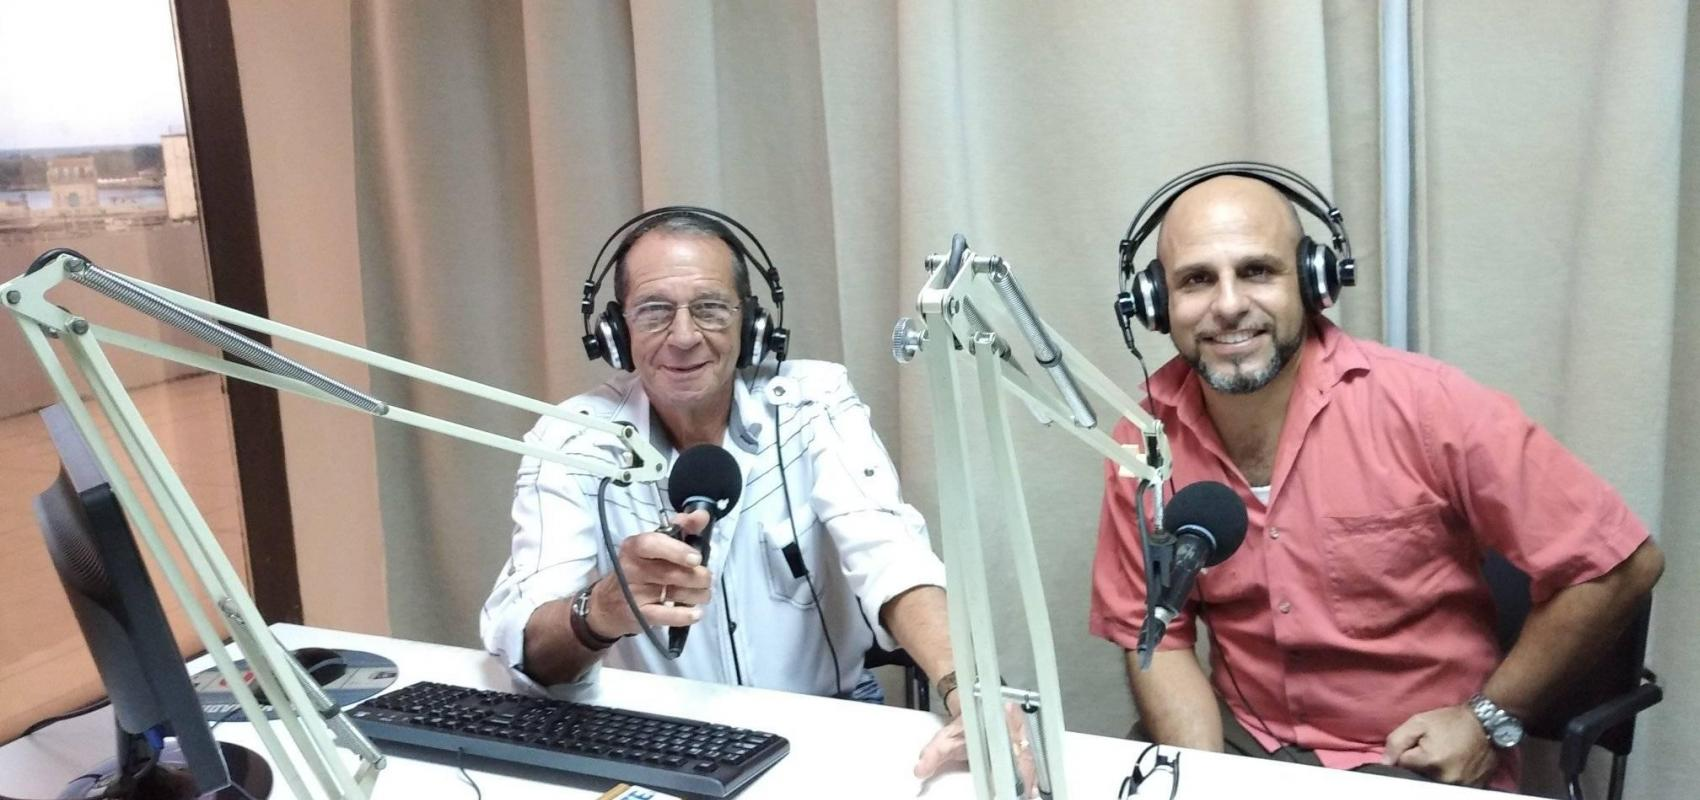 The artist of Maxima Douglas Pérez Castro together with the announcer Ángel Ferrera, in Habana Radio.